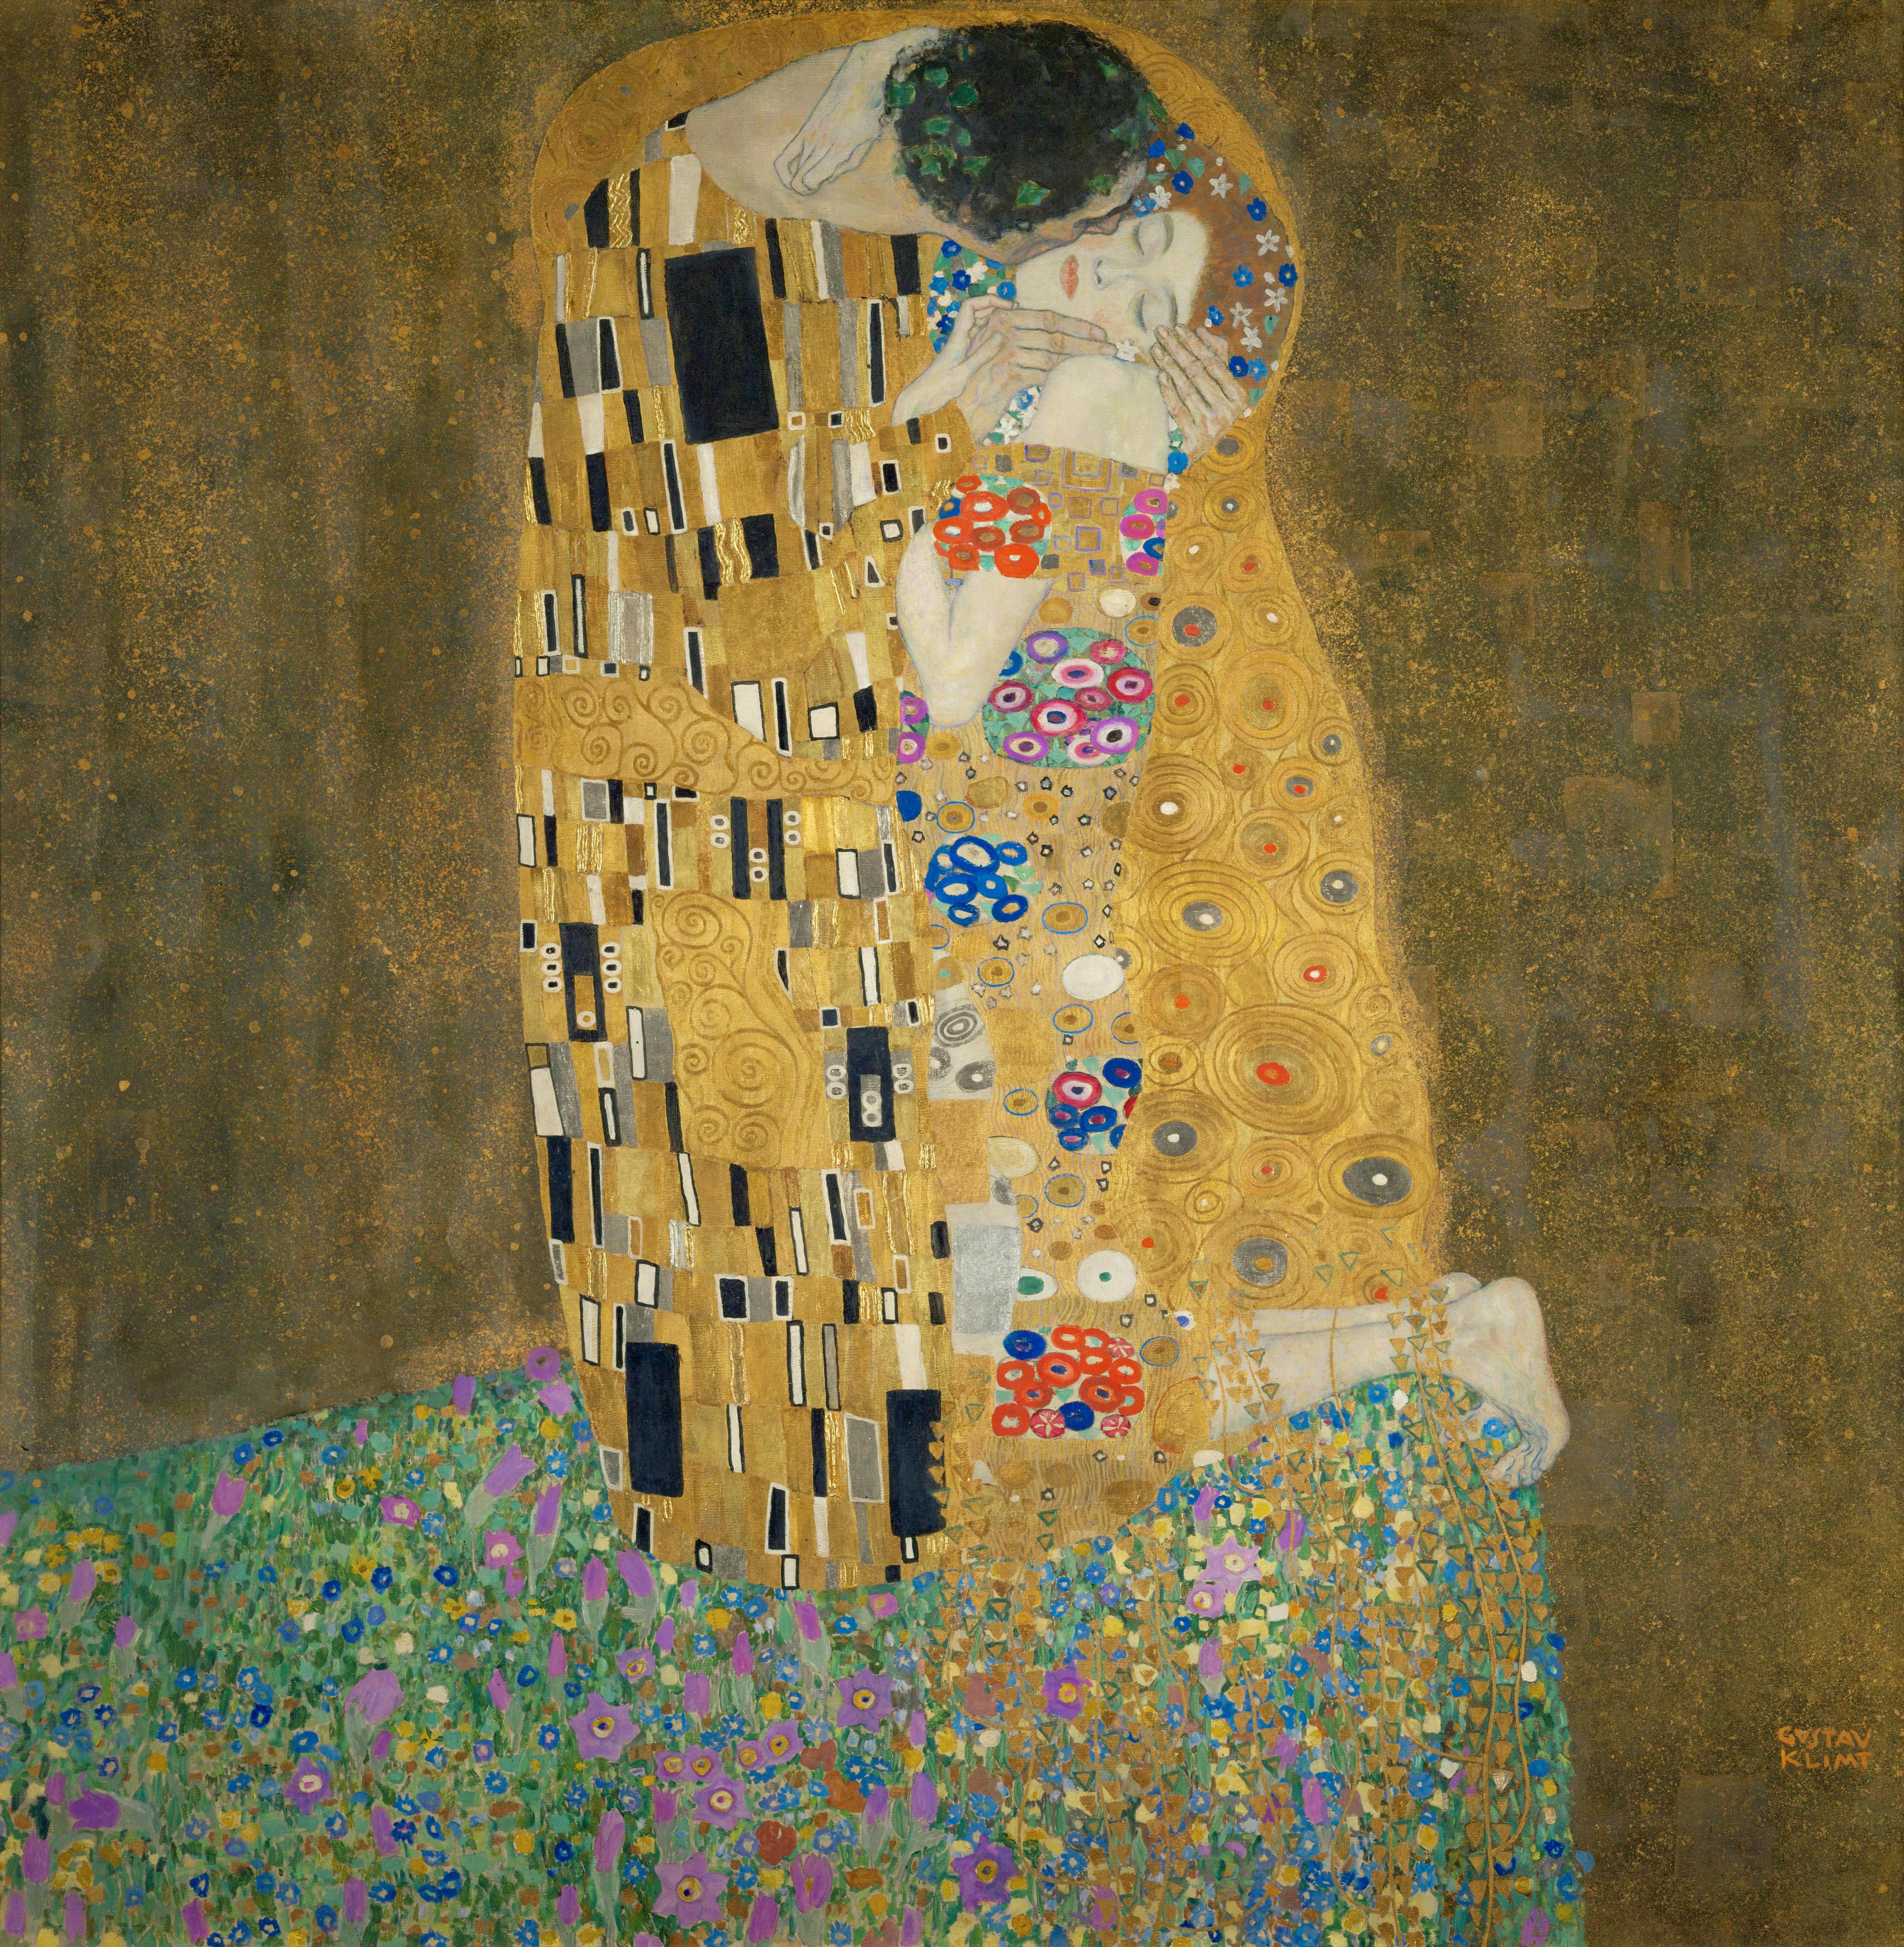 https://upload.wikimedia.org/wikipedia/commons/c/c8/Klimt_-_The_Kiss.jpg